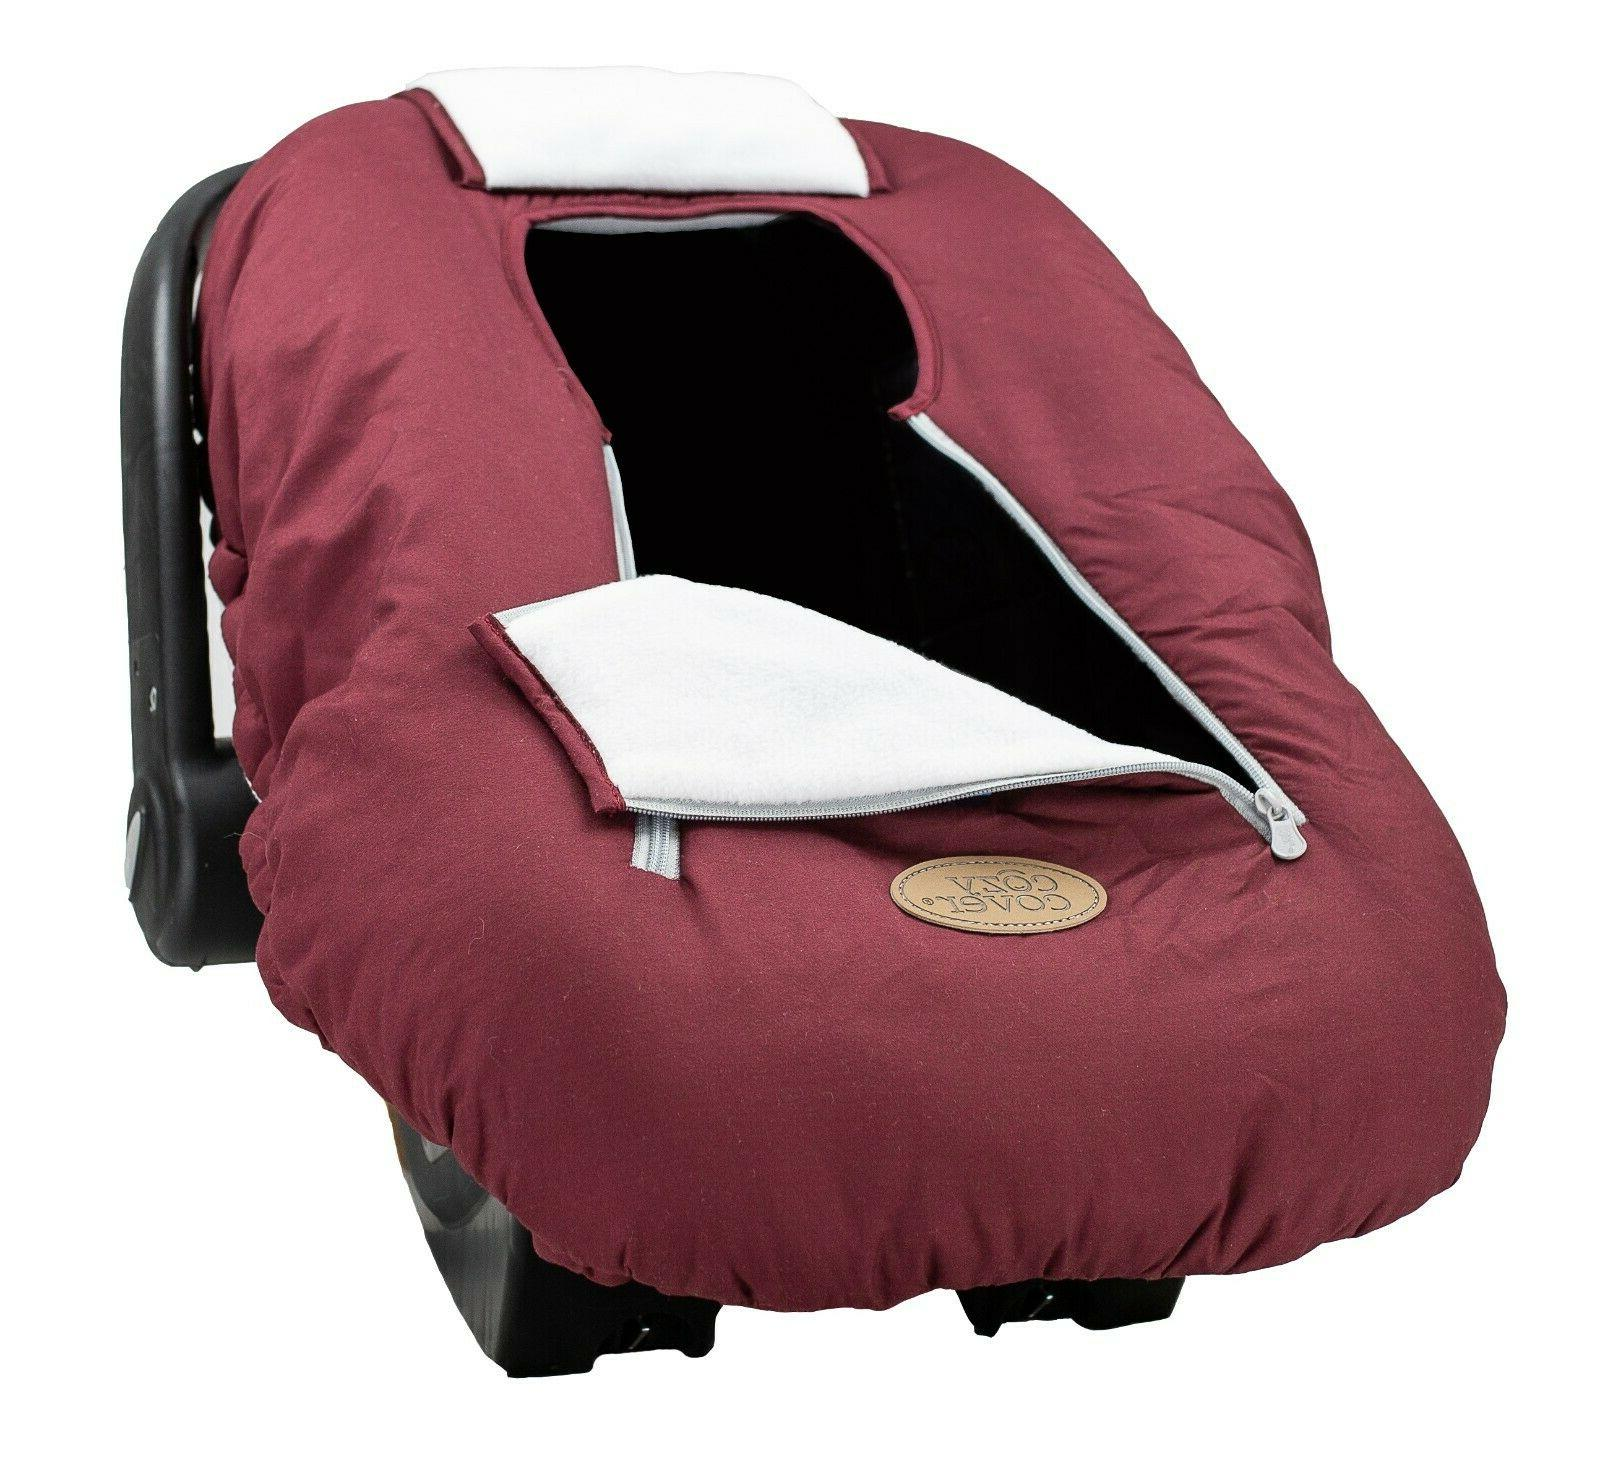 New Cover Carrier Cover Secure Baby Car Cover Choose Color